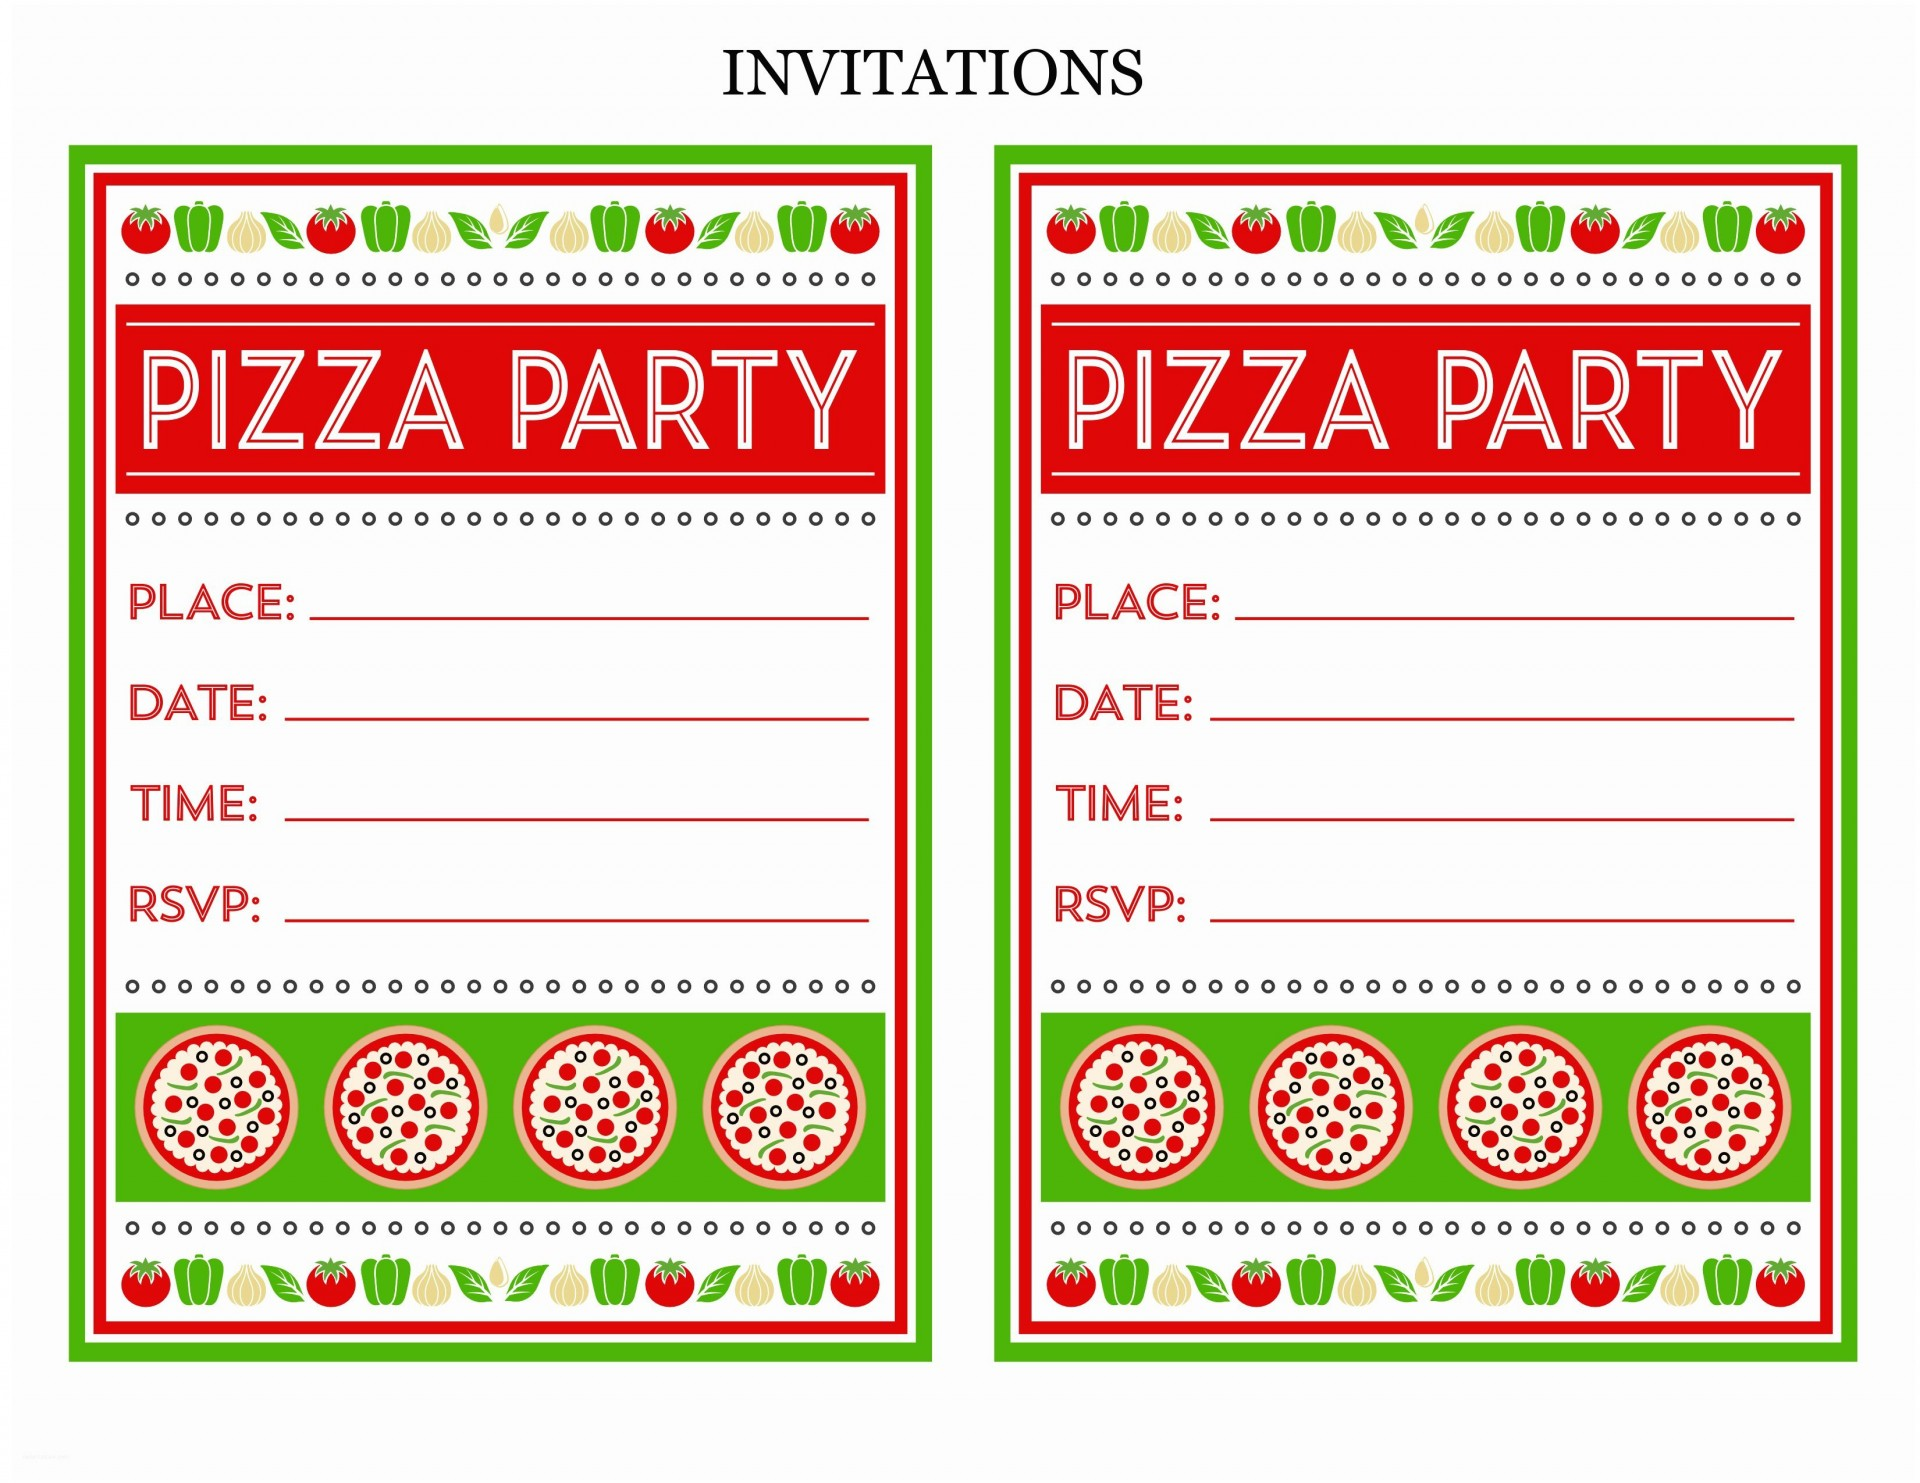 008 Staggering Pizza Party Invitation Template Free Picture  Printable1920